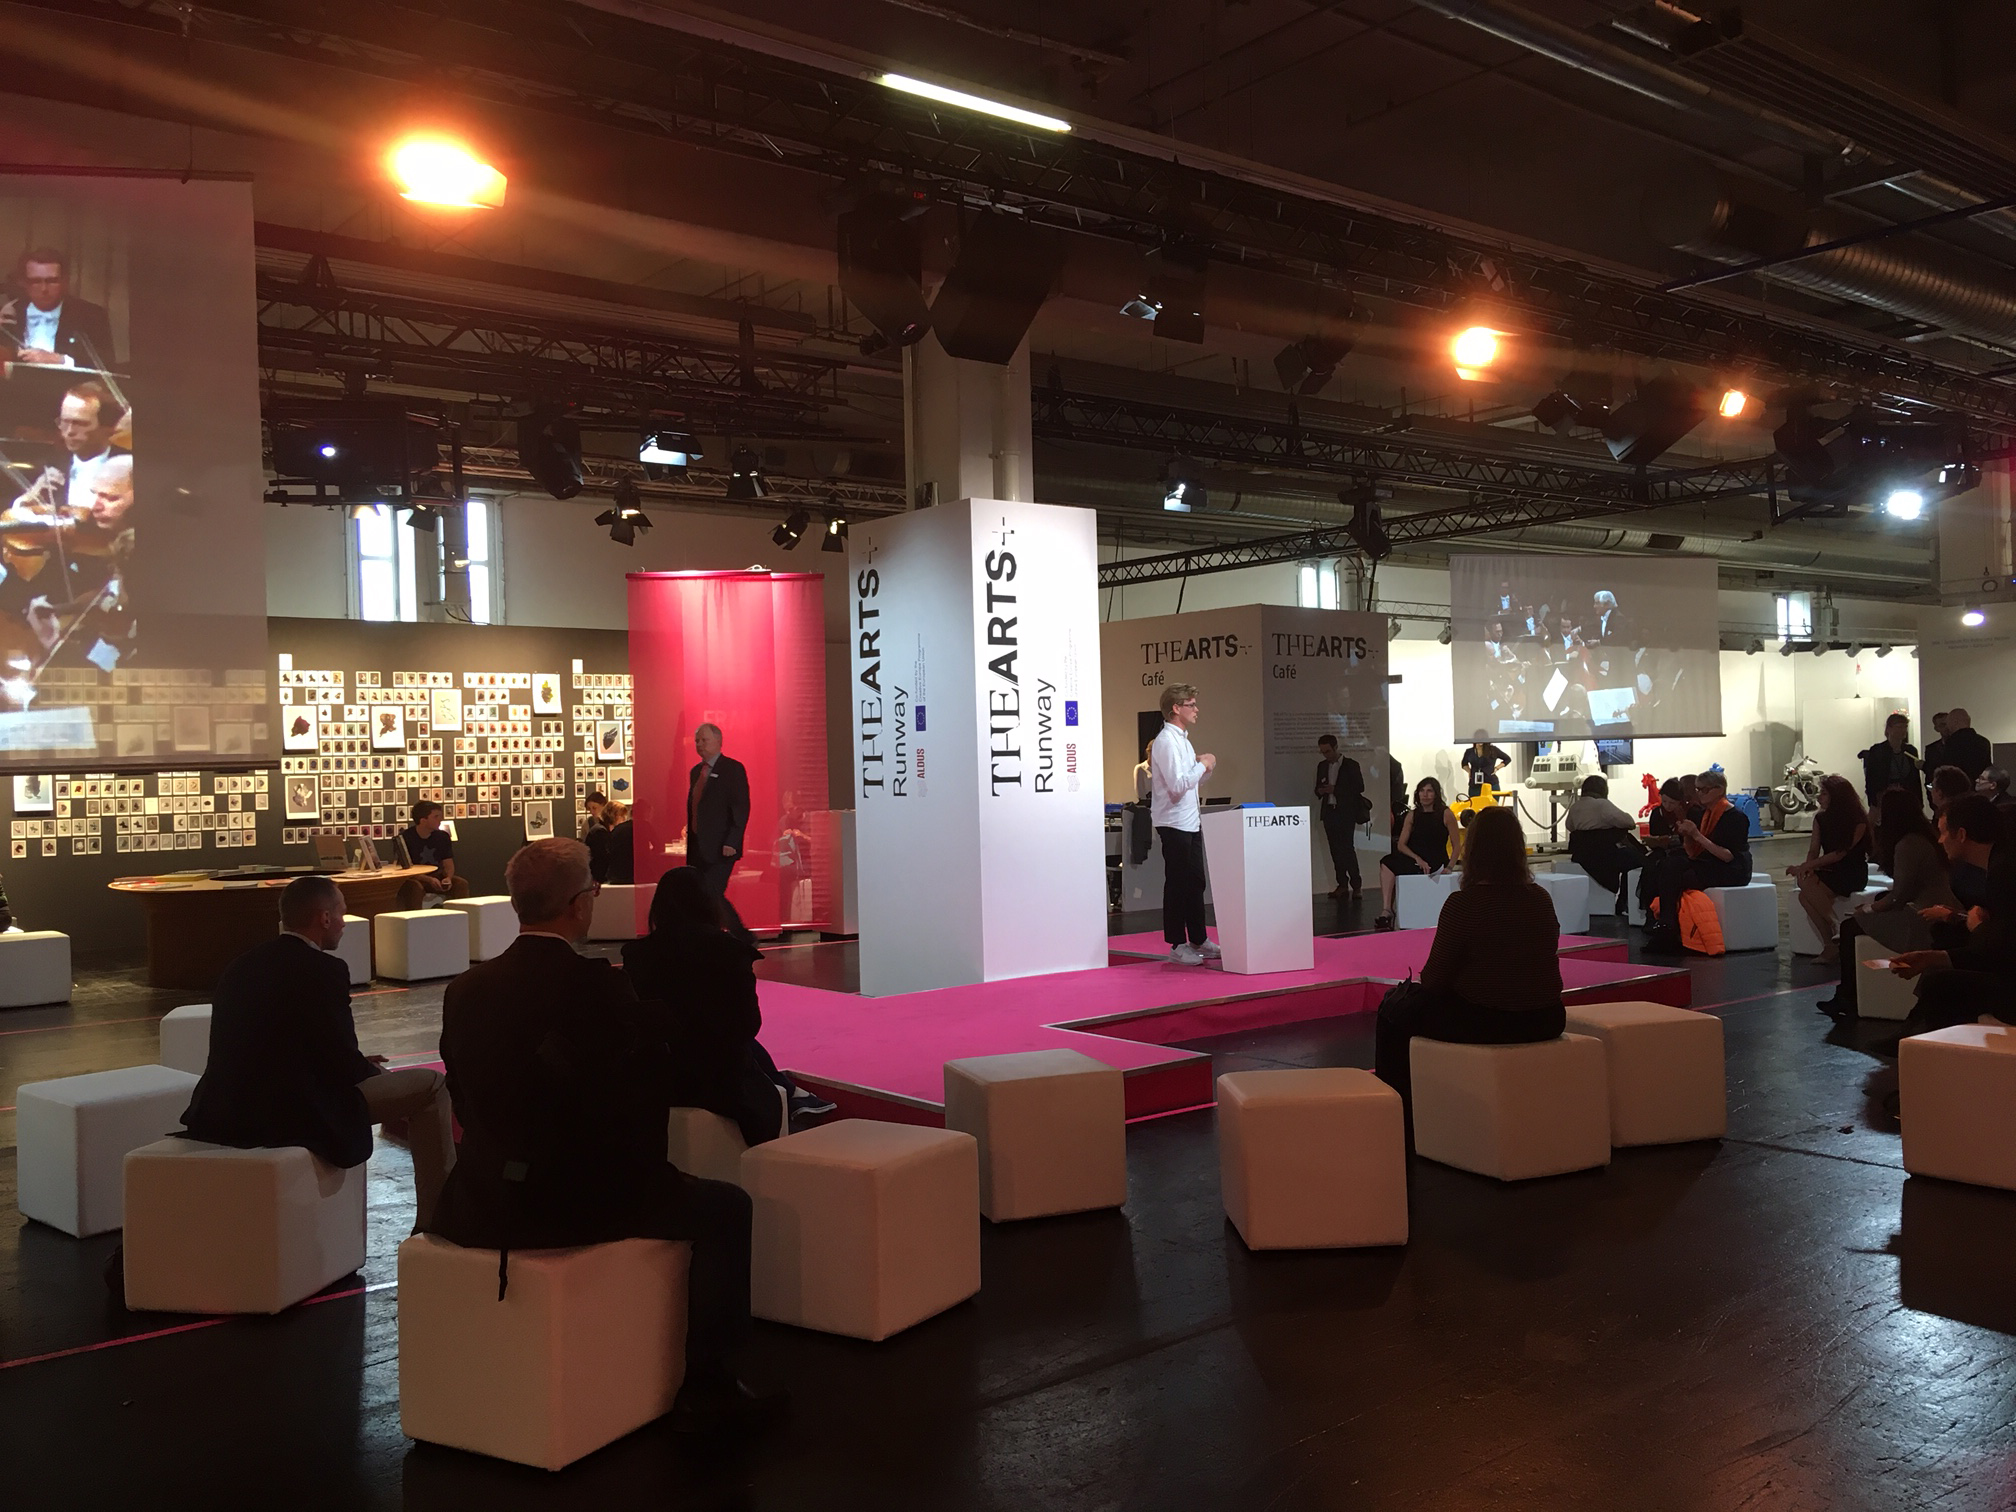 A presentation on new technologies for the humanities being given during the Frankfurt Book Fair.